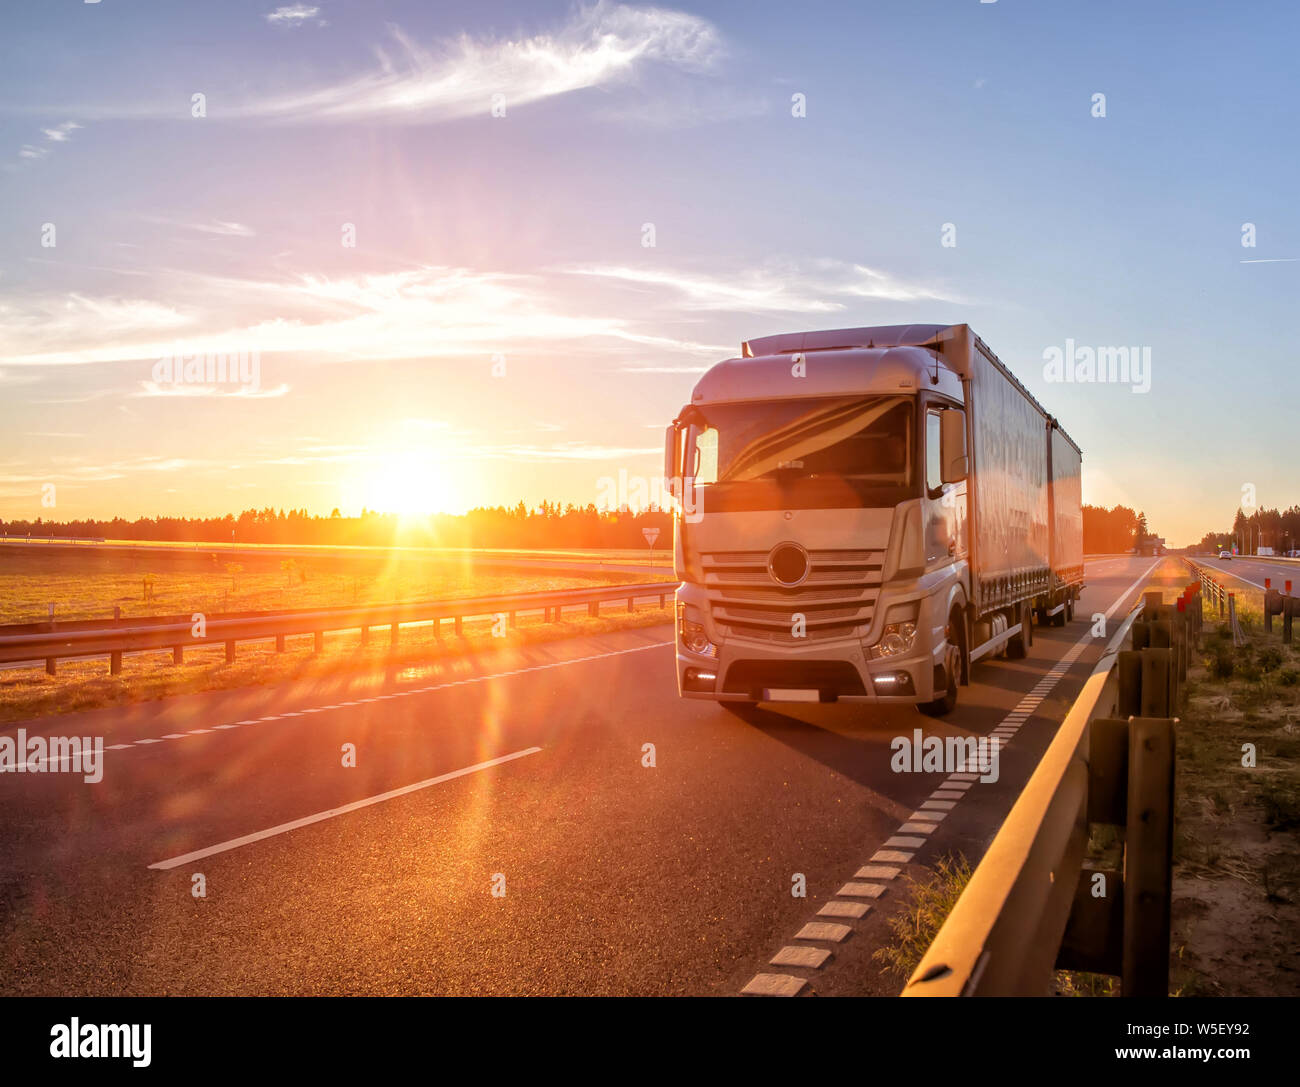 Truck Drivers Stock Photos & Truck Drivers Stock Images - Alamy